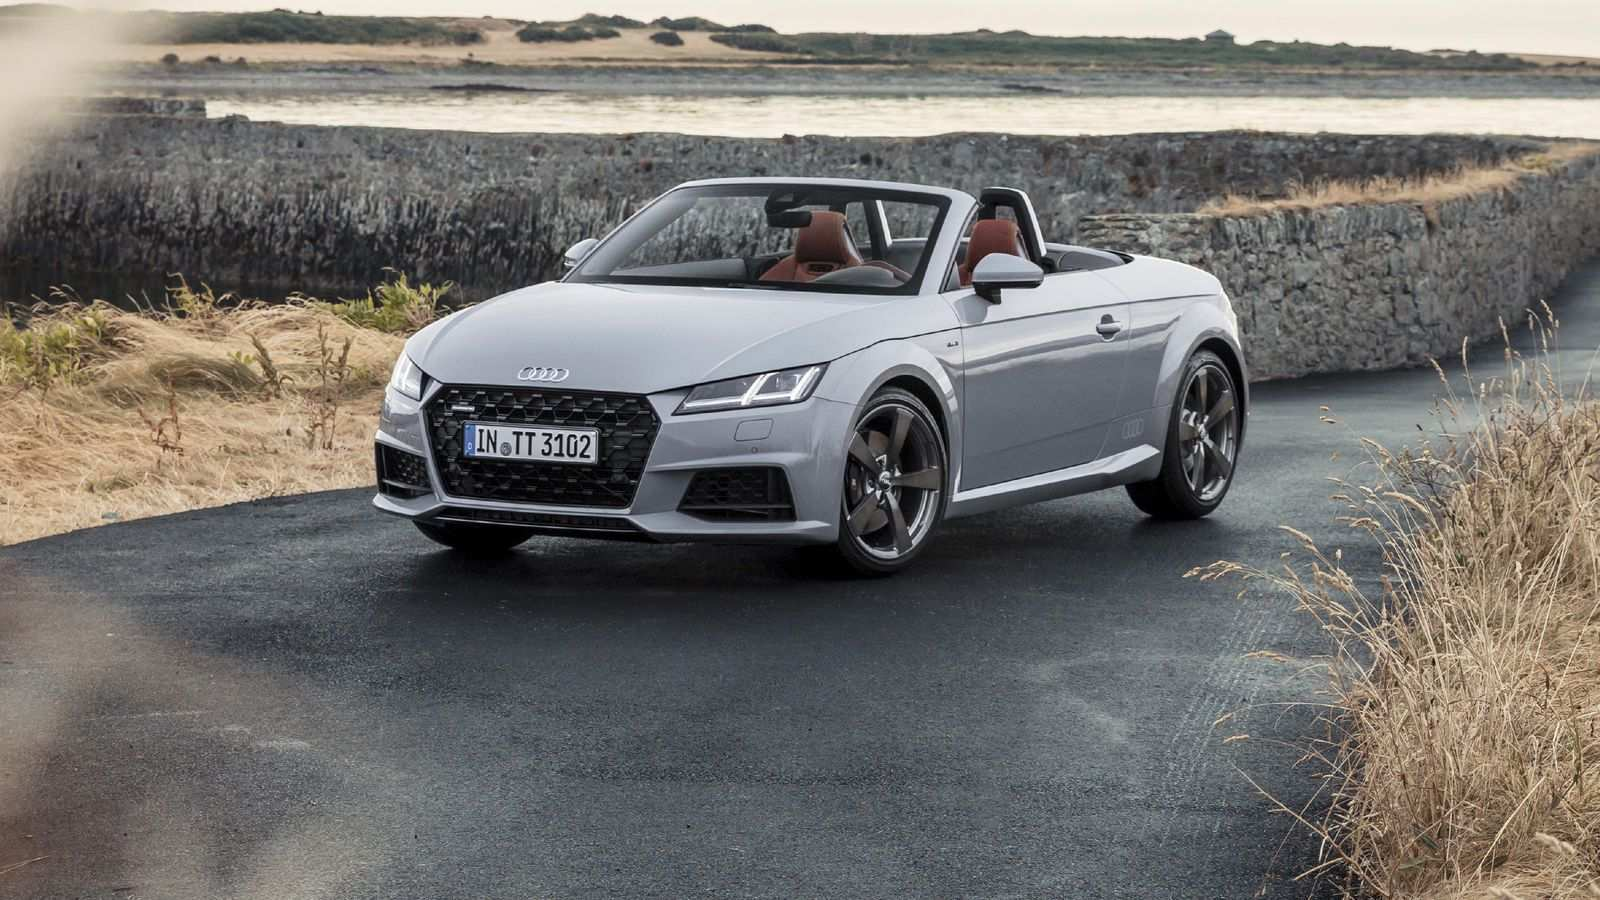 59 Great The Audi Tt Convertible 2019 Concept Engine with The Audi Tt Convertible 2019 Concept